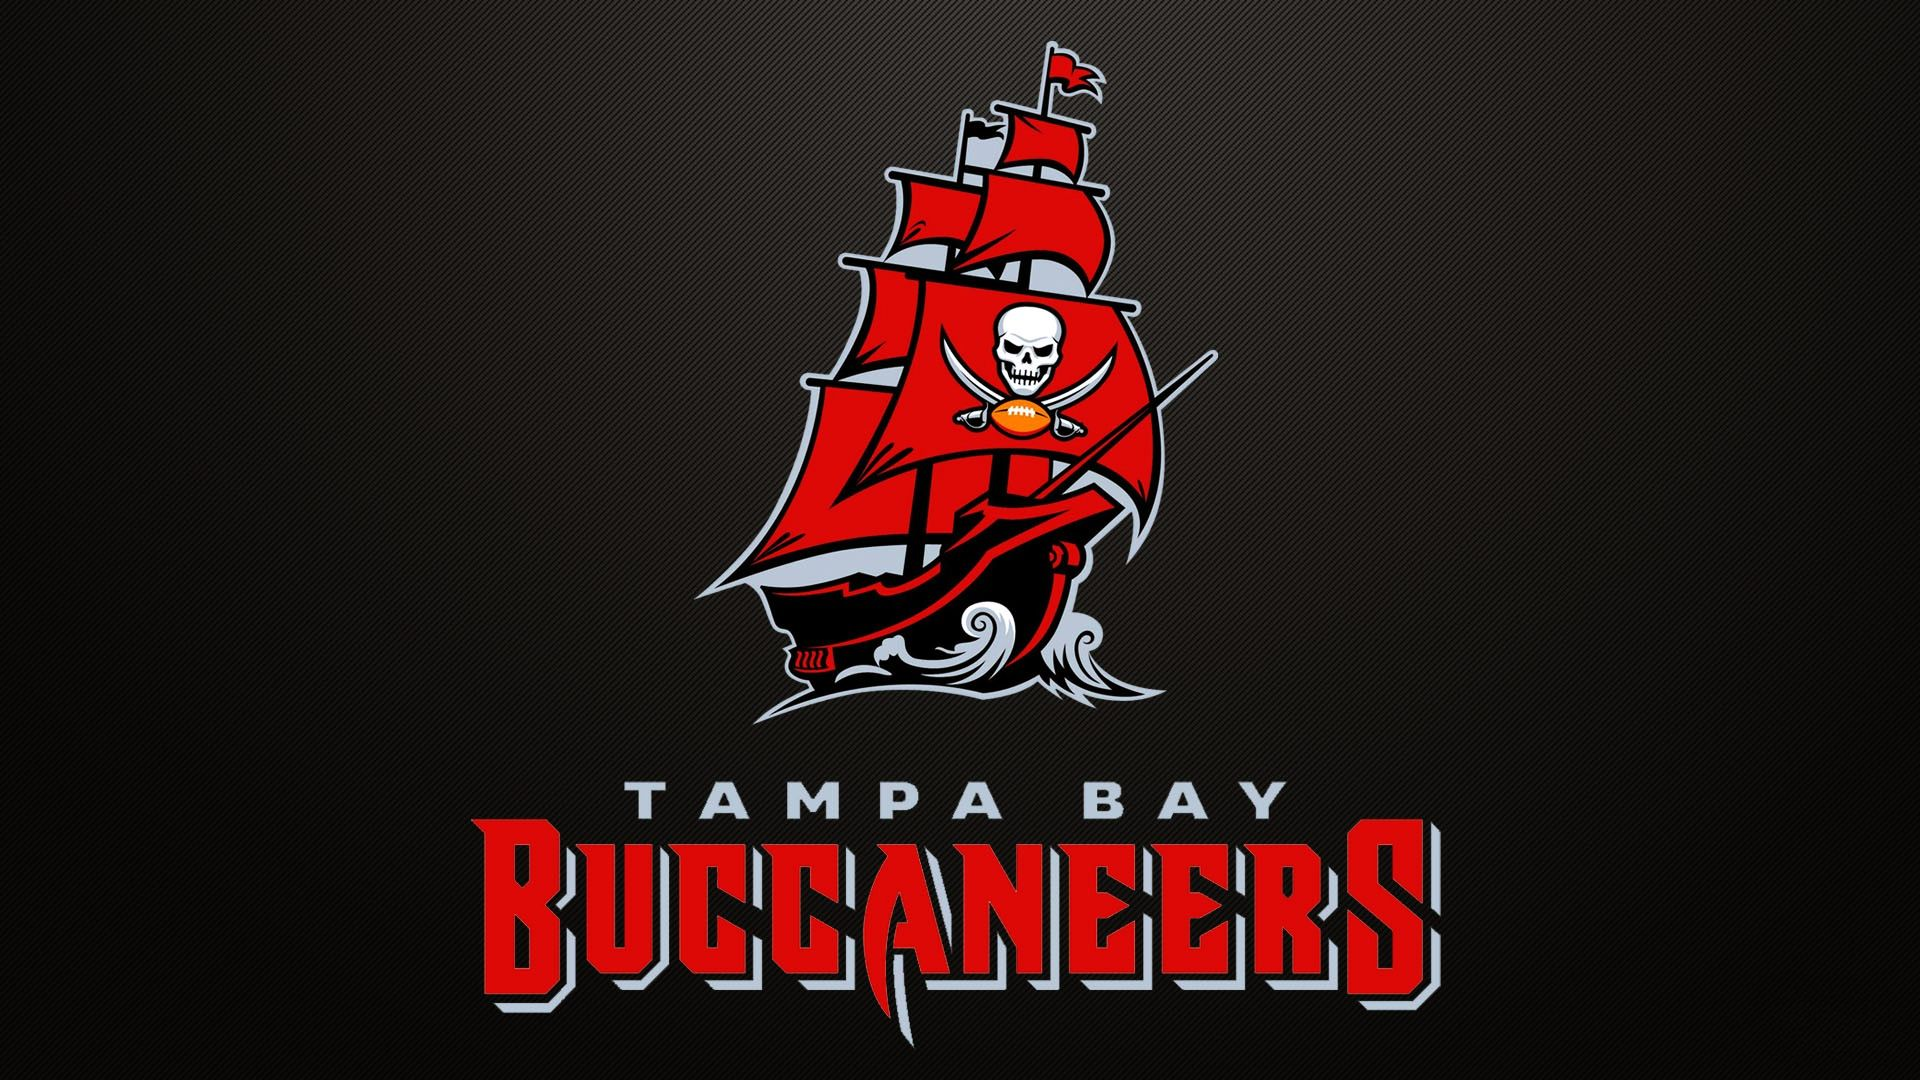 Tampa Bay Buccaneers Wallpaper HD